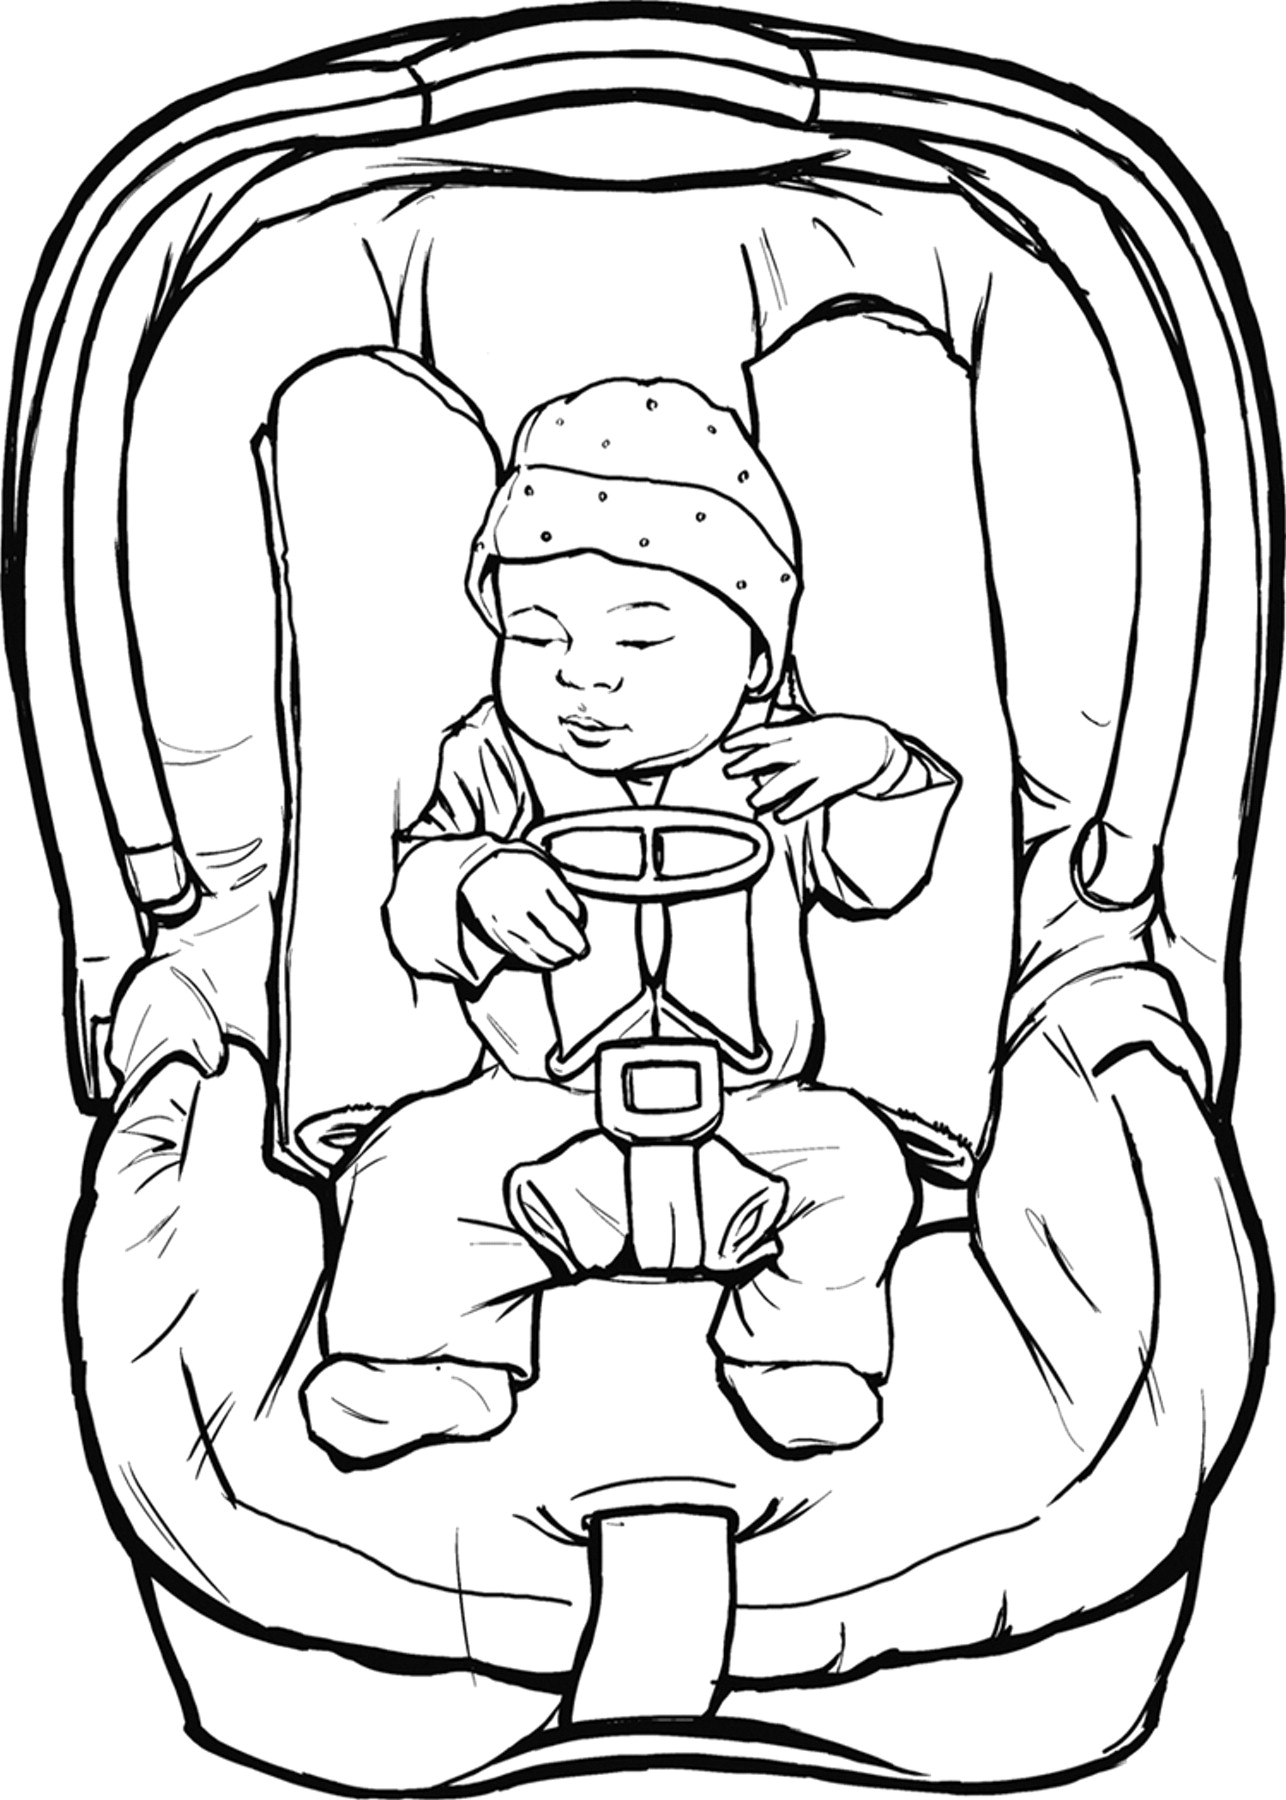 1286x1800 Bulky Coats Are Not For The Car Seat Cumberland Pediatric Foundation